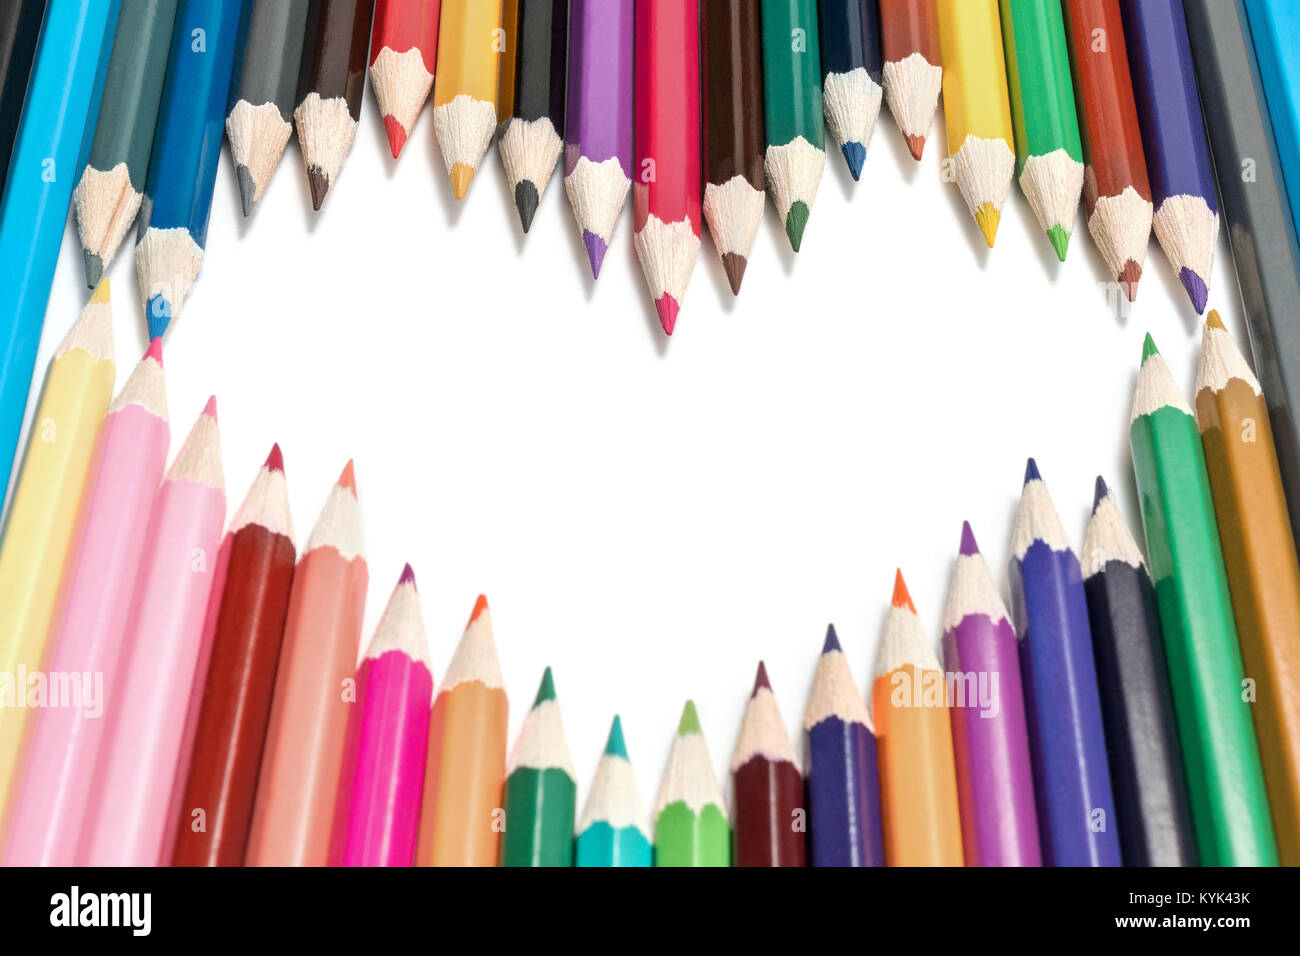 Set of colored pencils lined in heart shape, isolated on white background - Stock Image